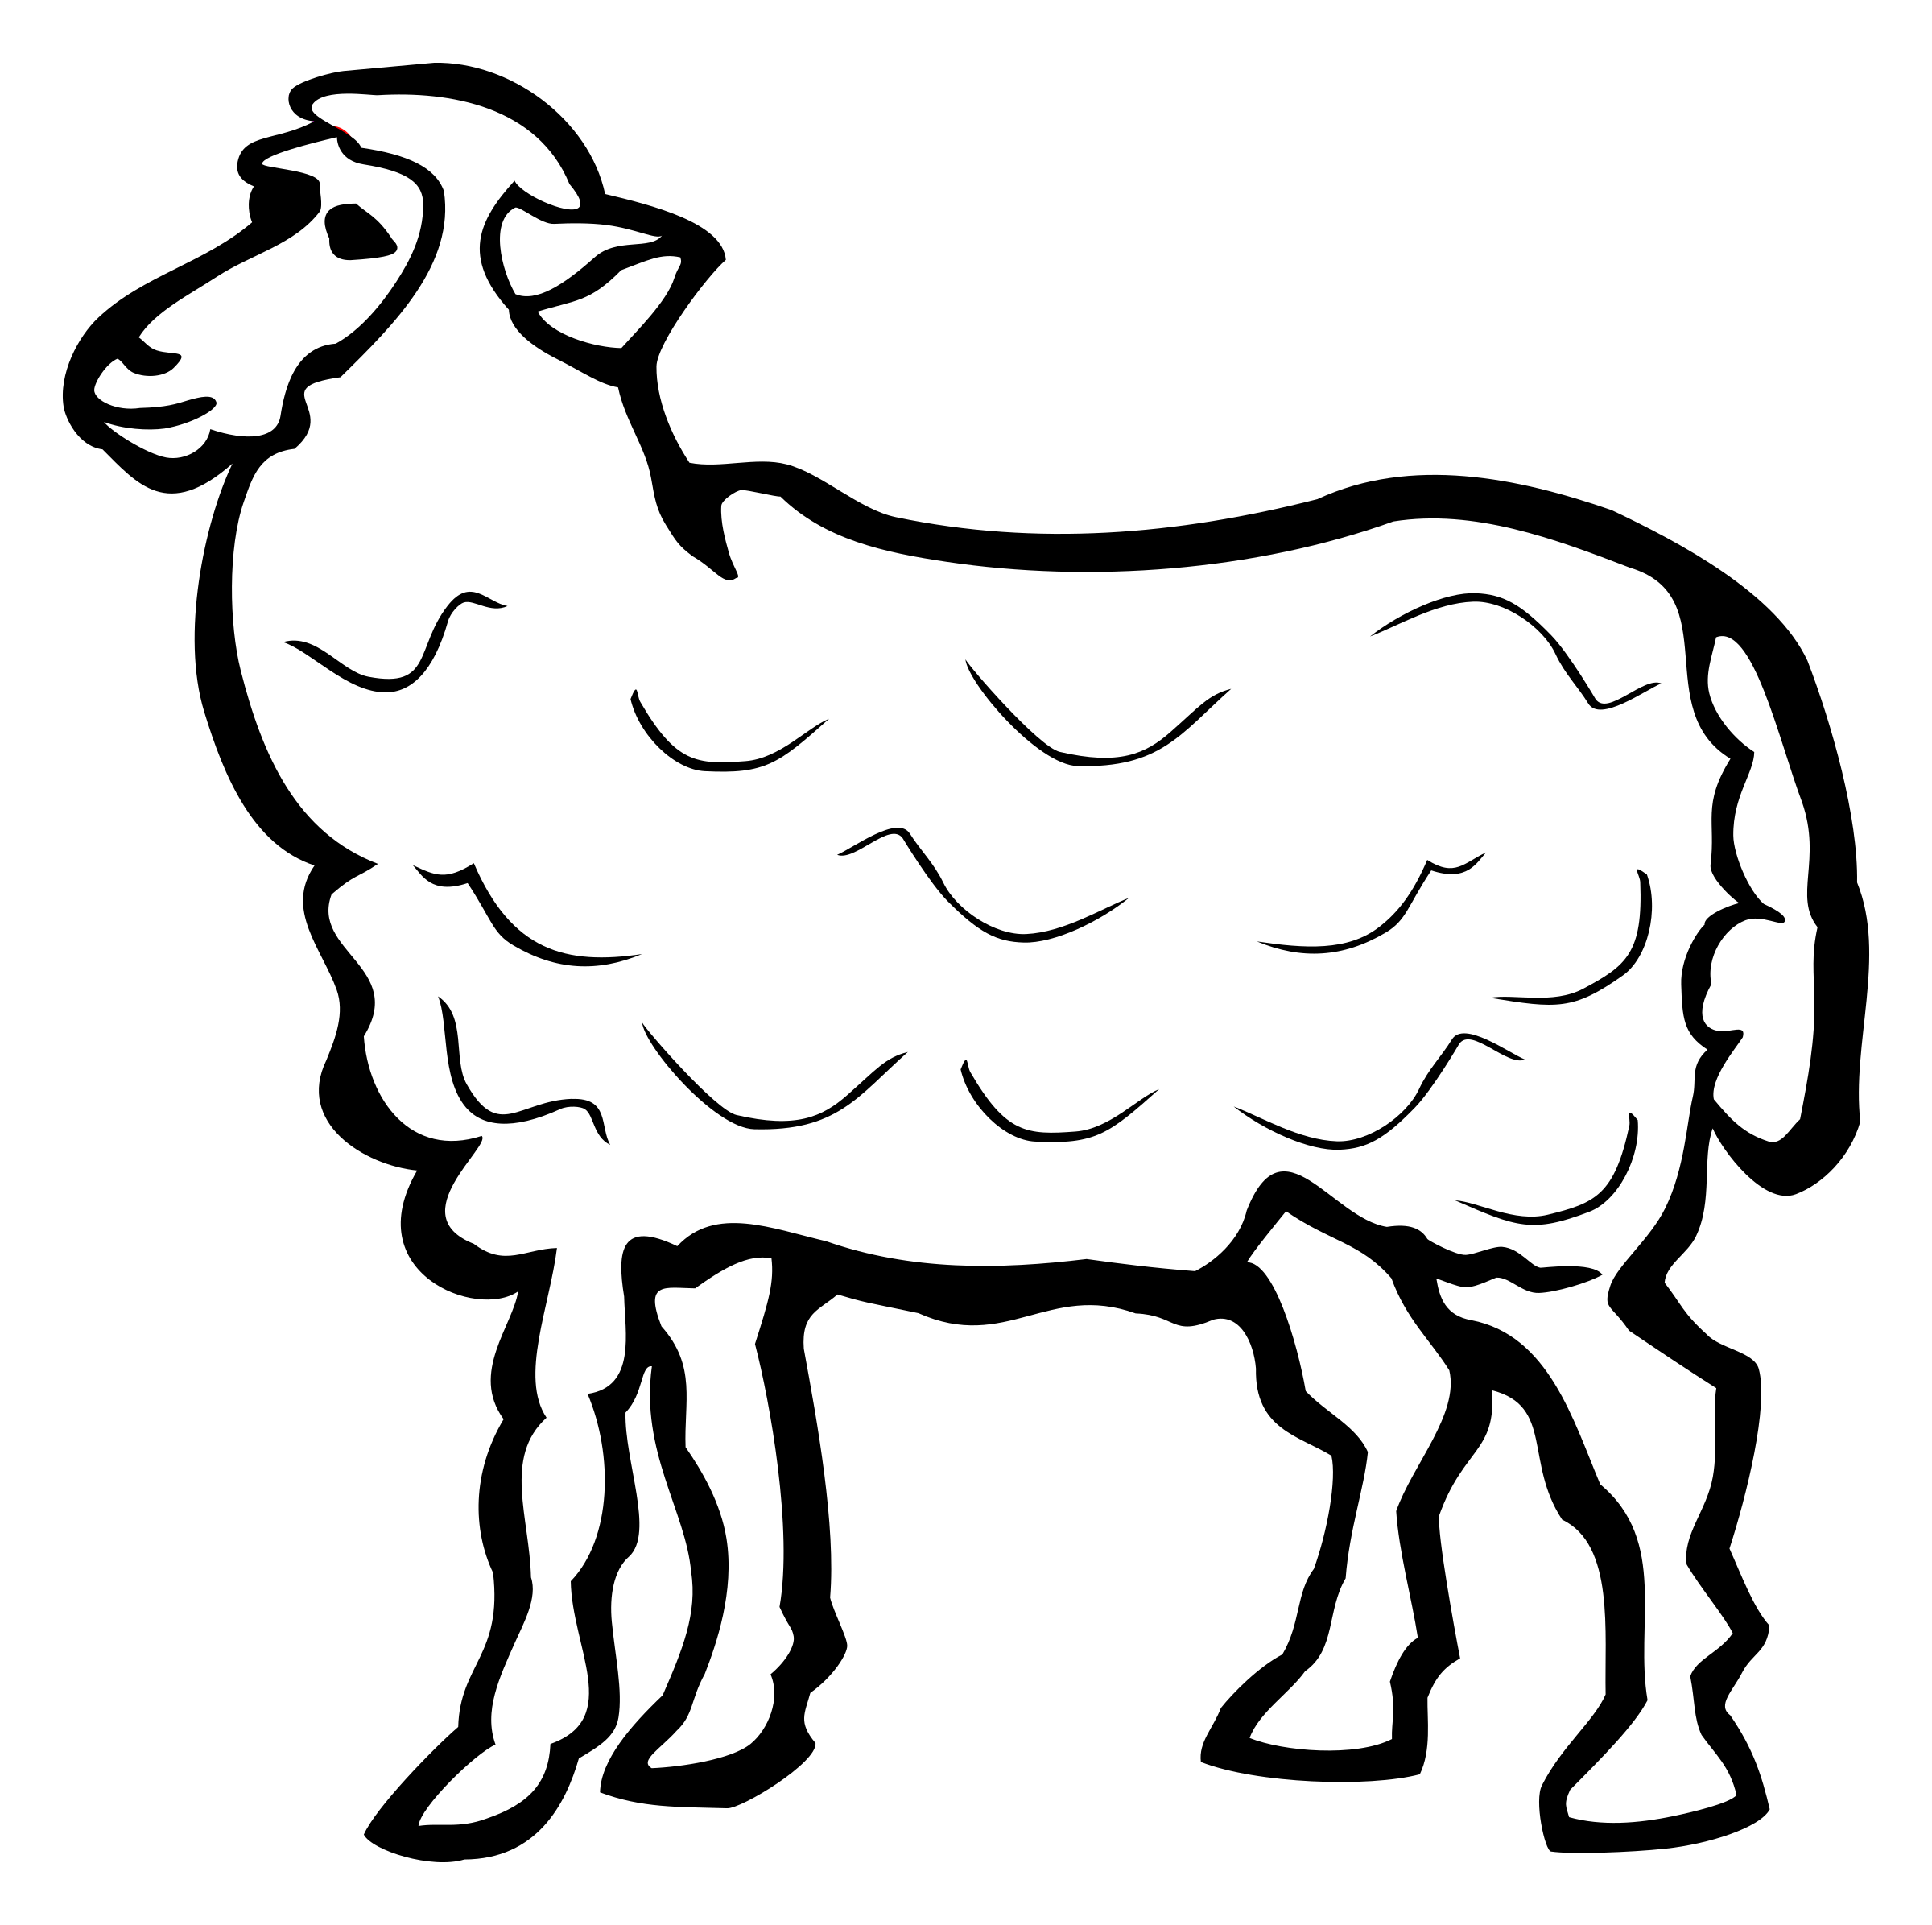 sheep - lineart by frankes